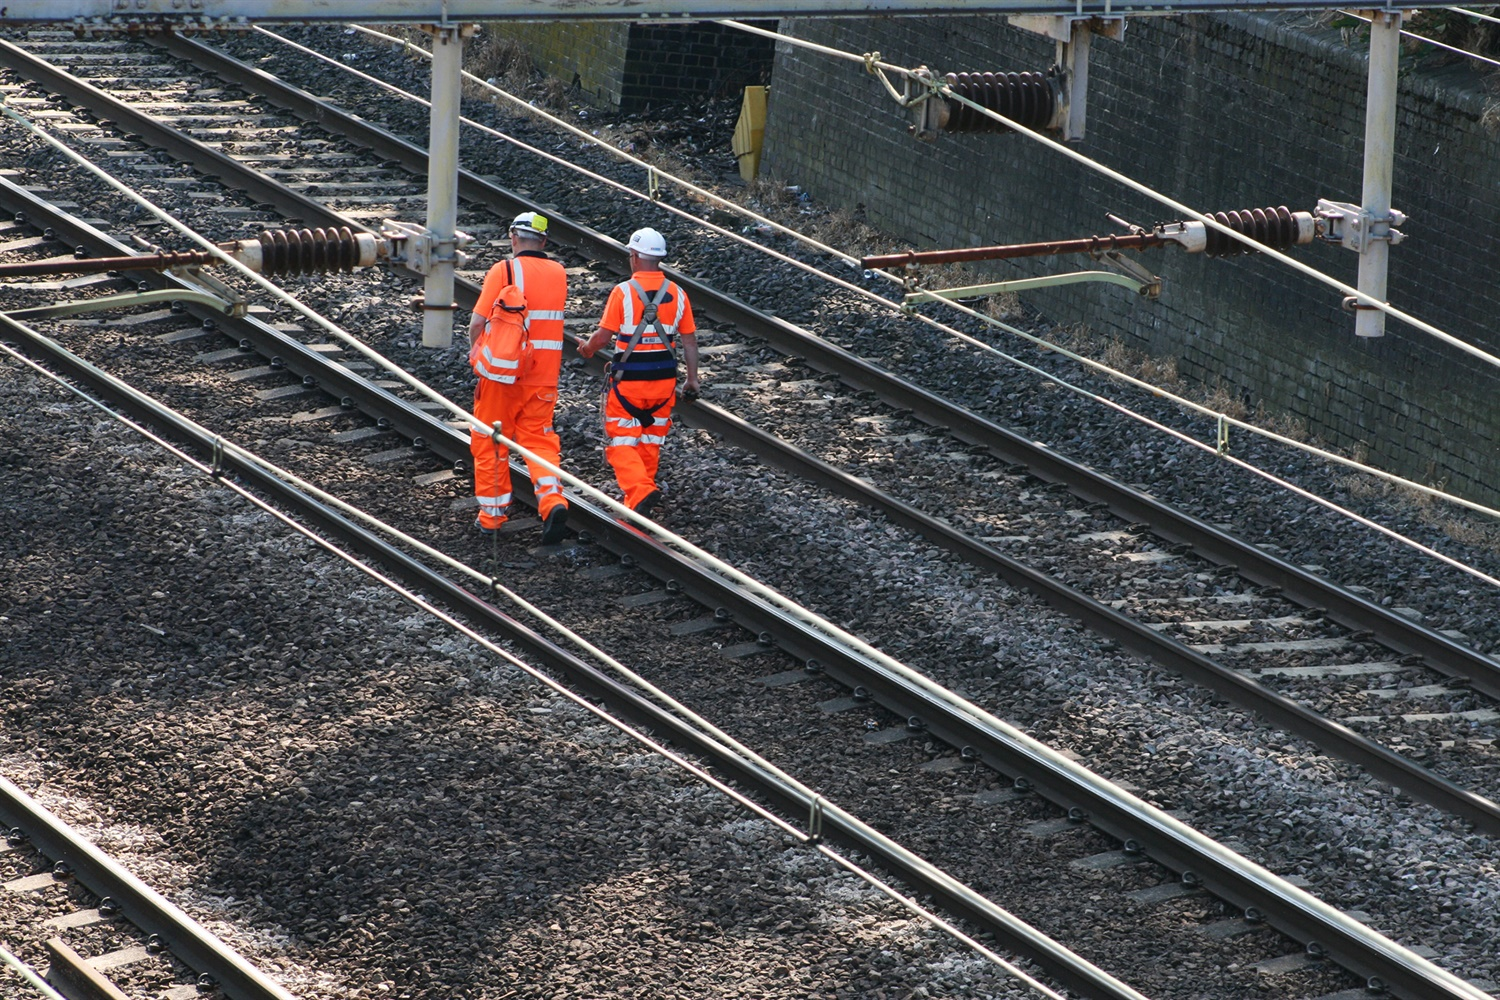 Emergency track work in Bristol cancelled due to chemical emergency risk